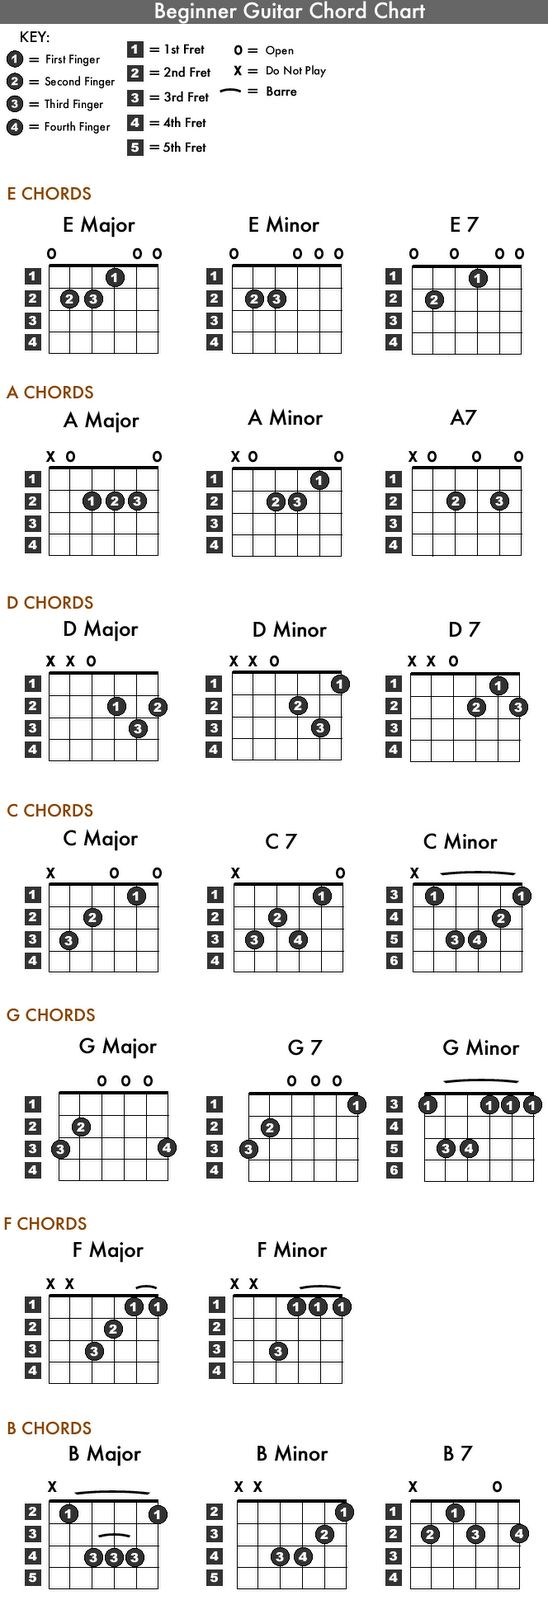 114 best new musicchords images on pinterest guitar chord 114 best new musicchords images on pinterest guitar chord music notes and random stuff hexwebz Image collections